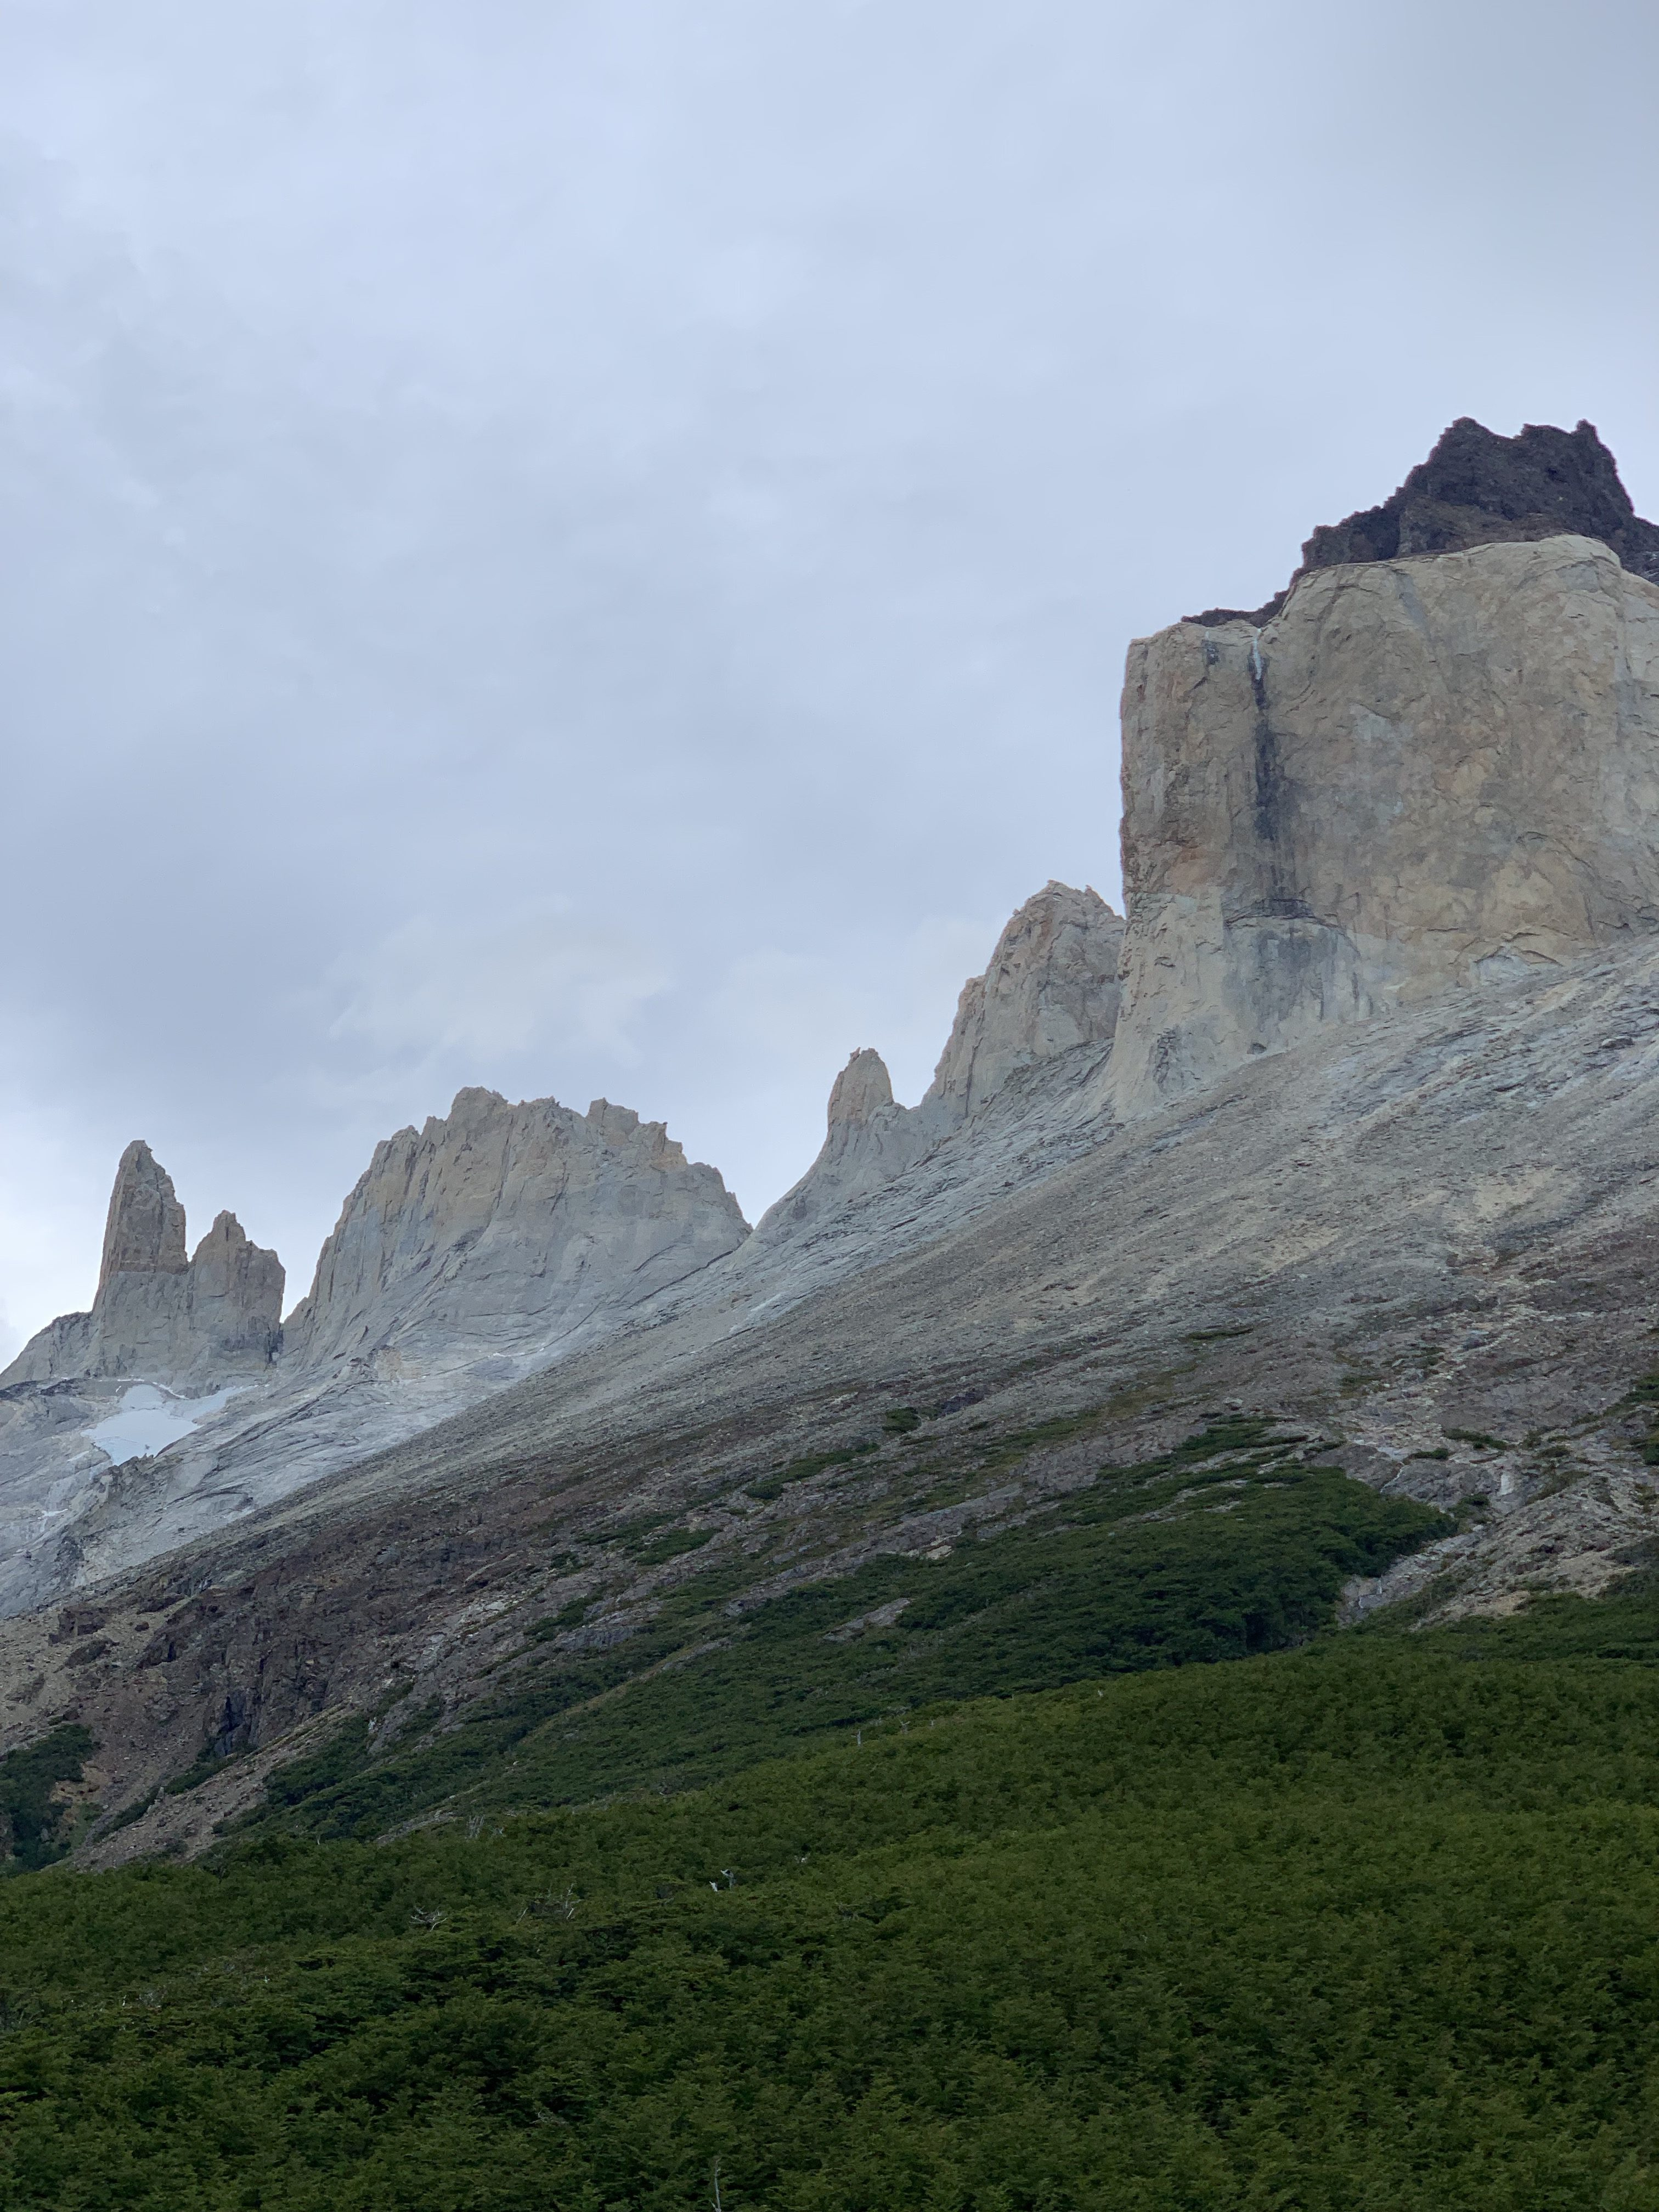 Day 2 of The W Trek Patagonia Torres del Paine National Park